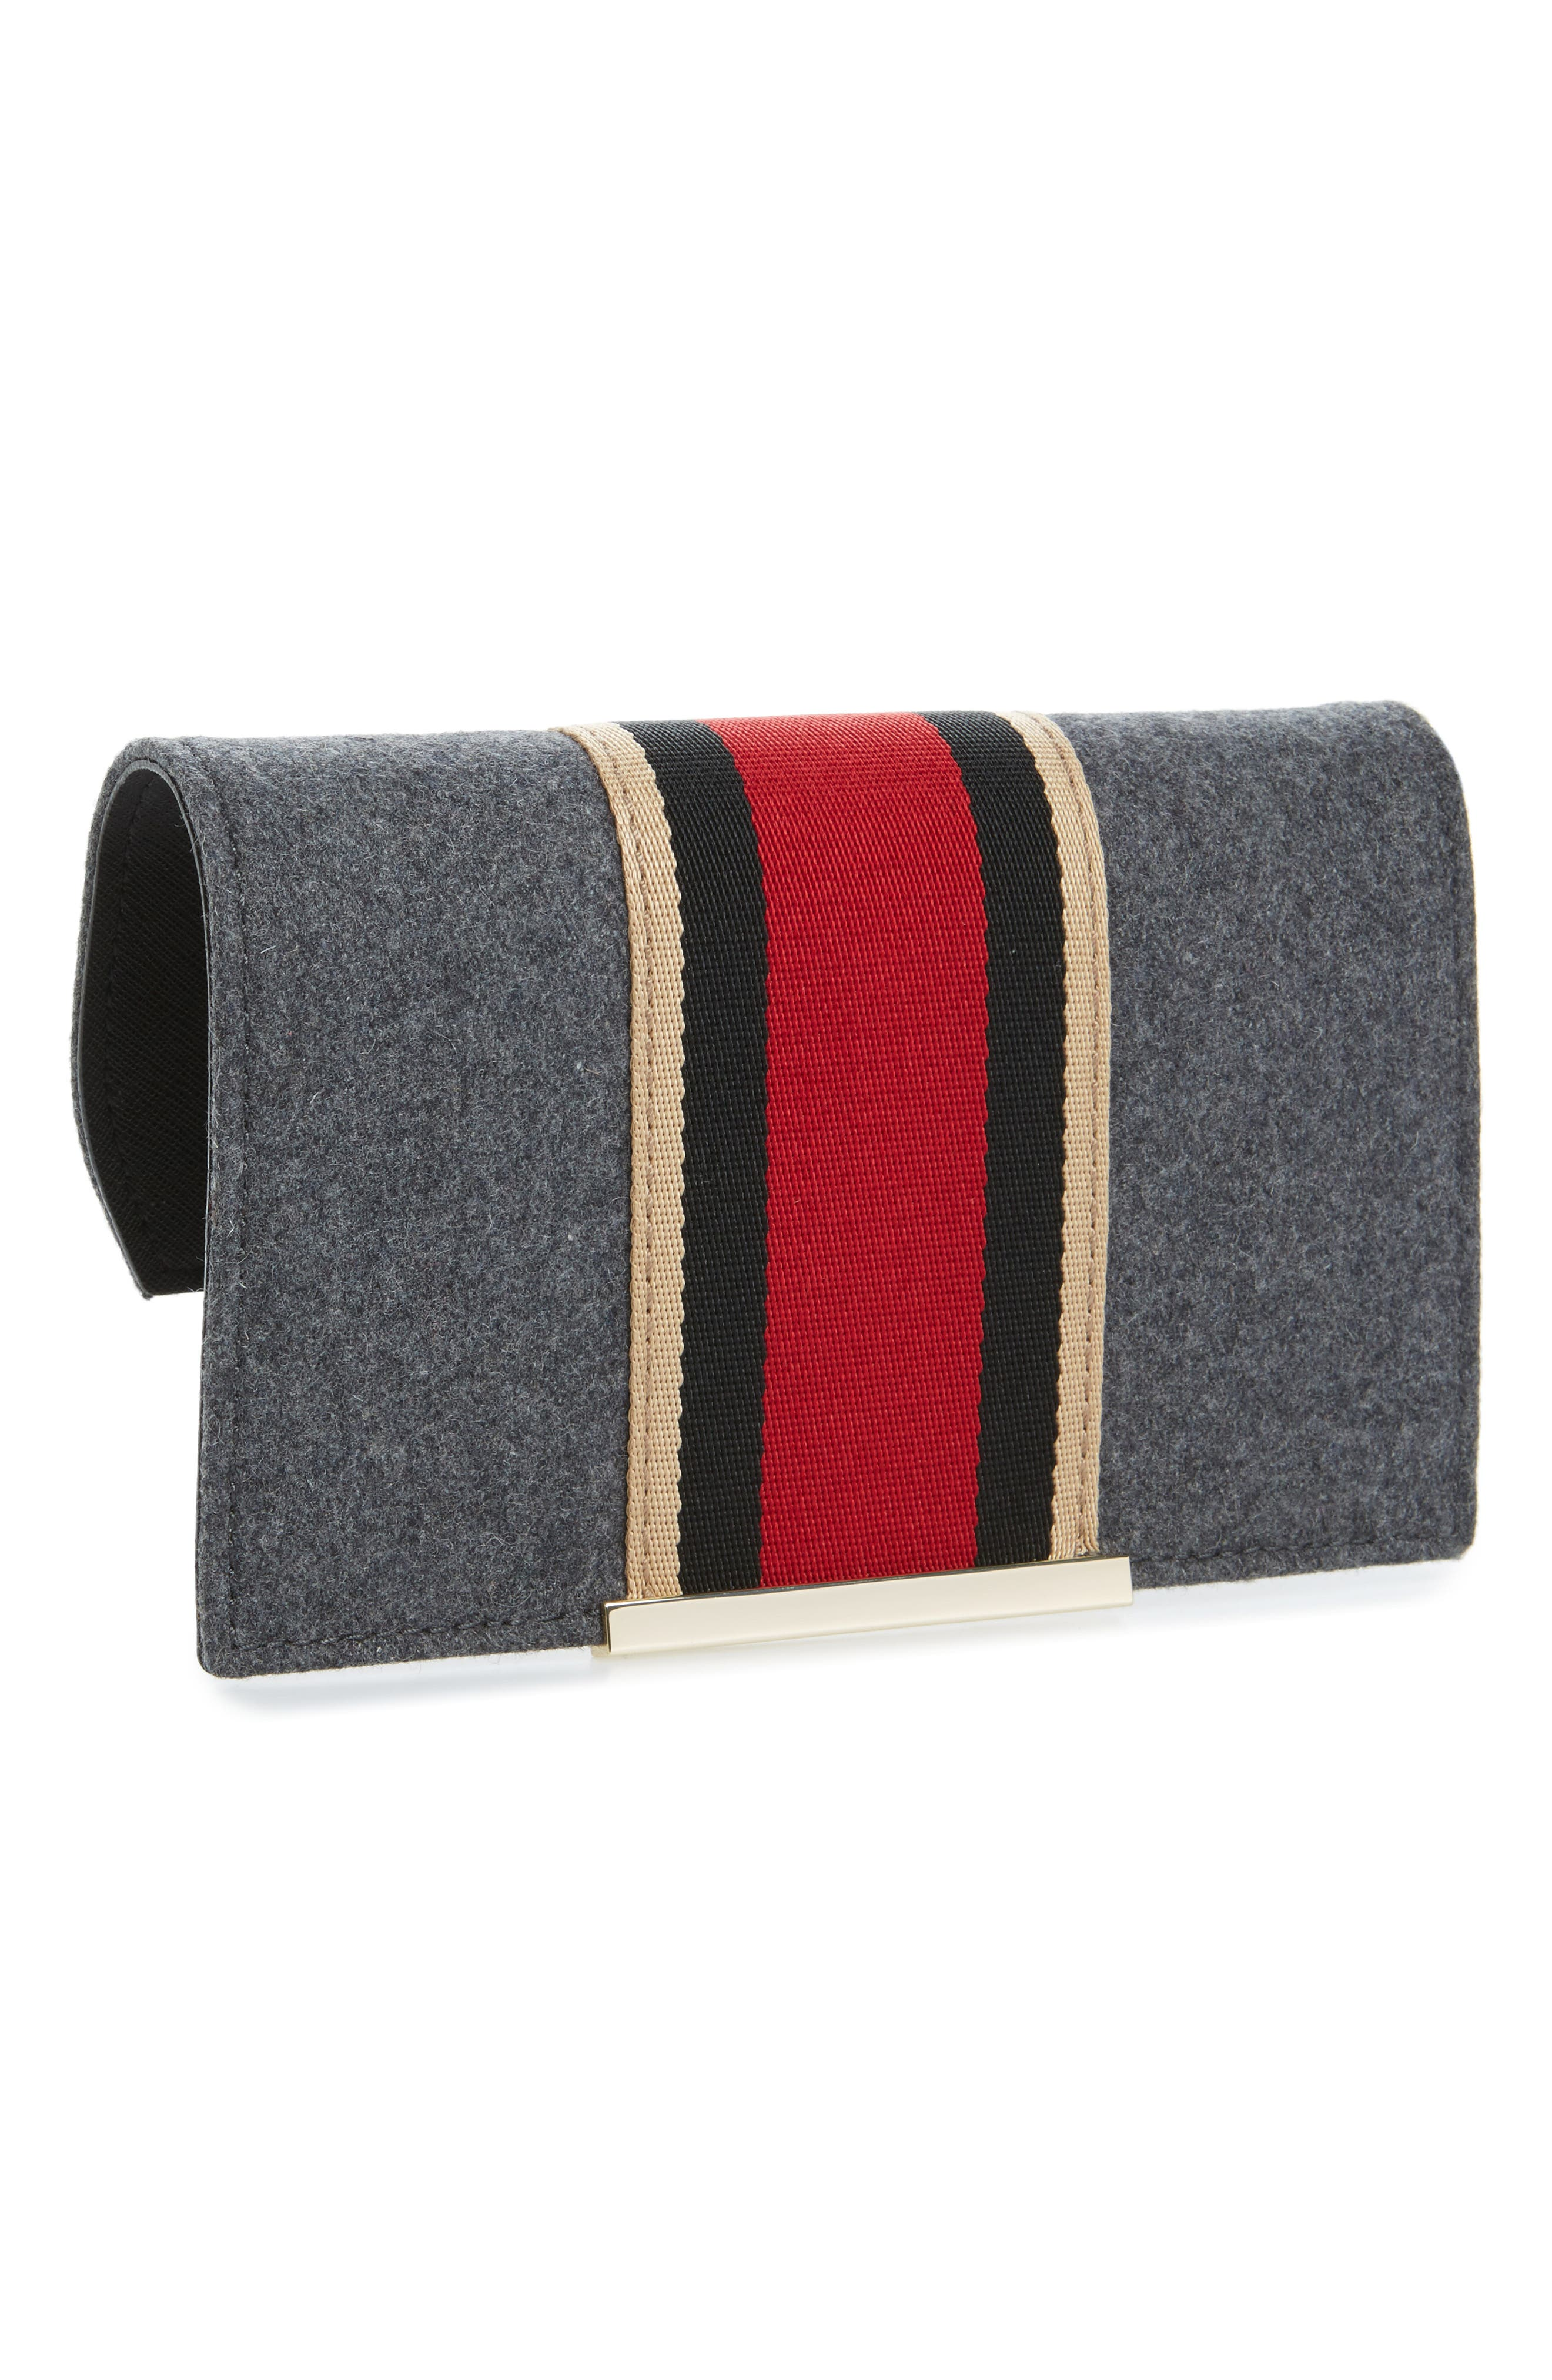 Main Image - kate spade new york make it mine flannel stripe snap-on accent flap